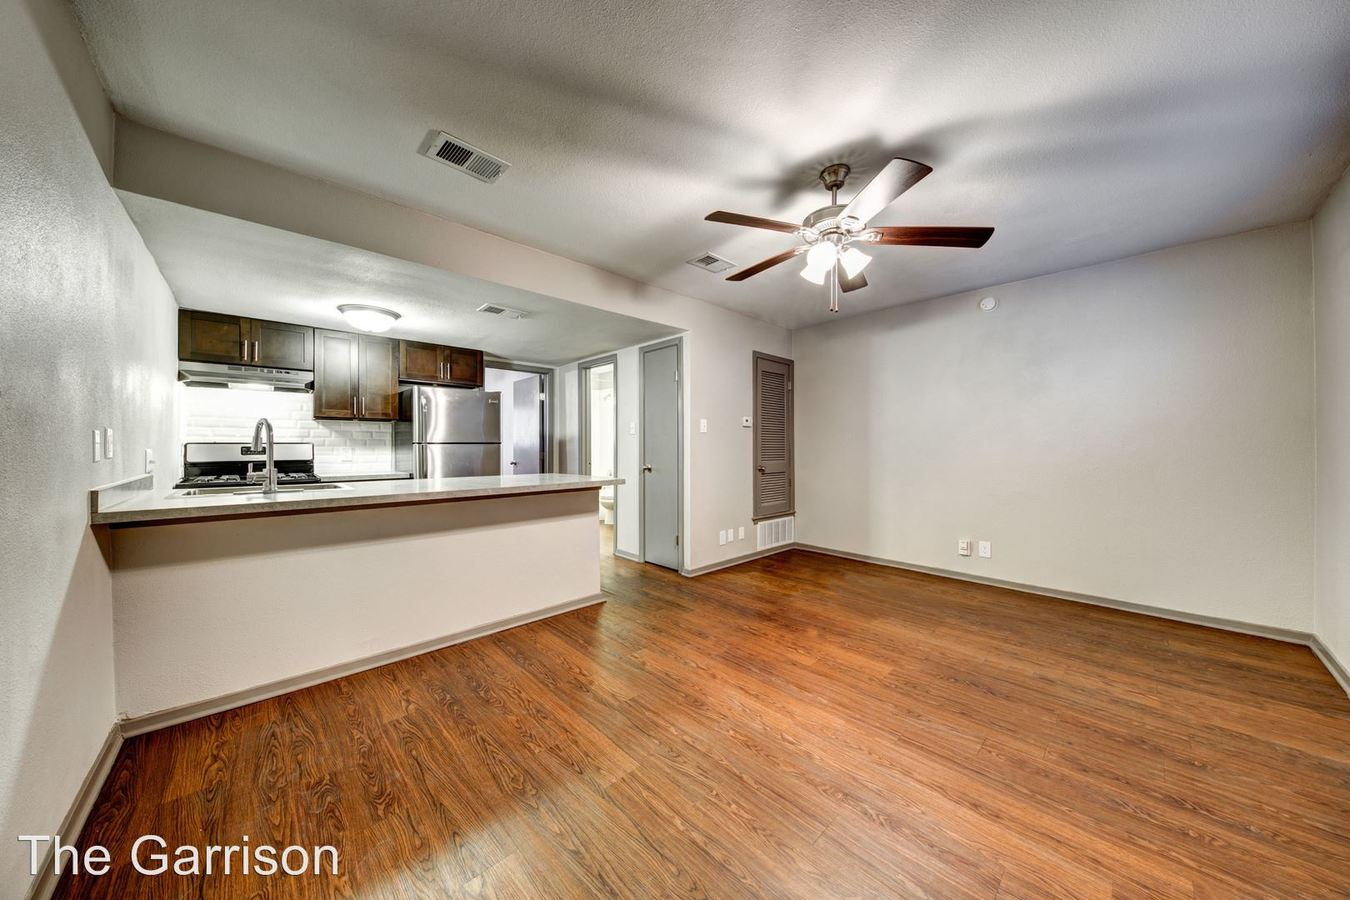 1 Bedroom 1 Bathroom Apartment for rent at The Garrison in Austin, TX